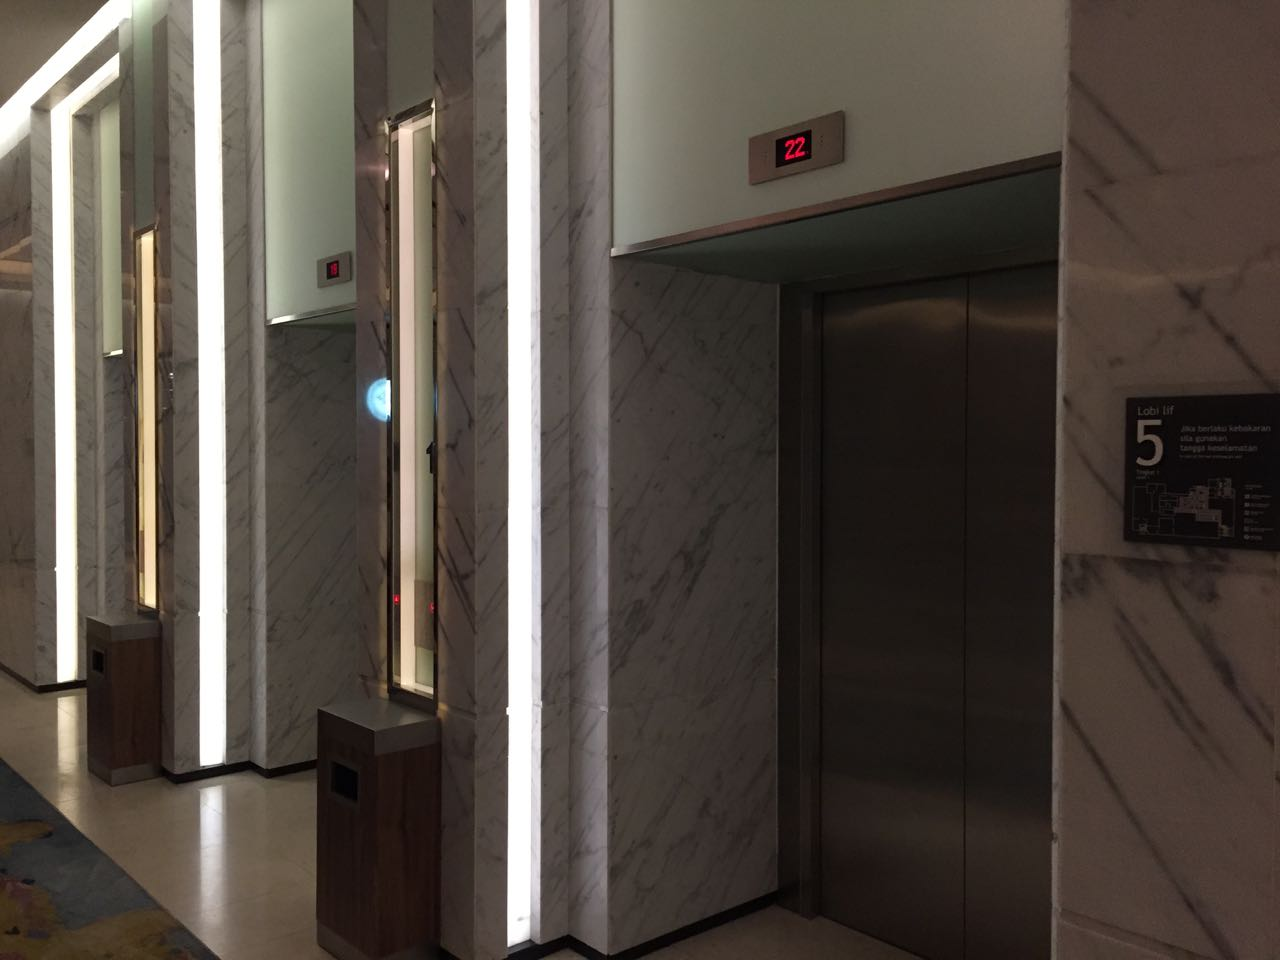 No hall signal and I can't see the other elevator doors.